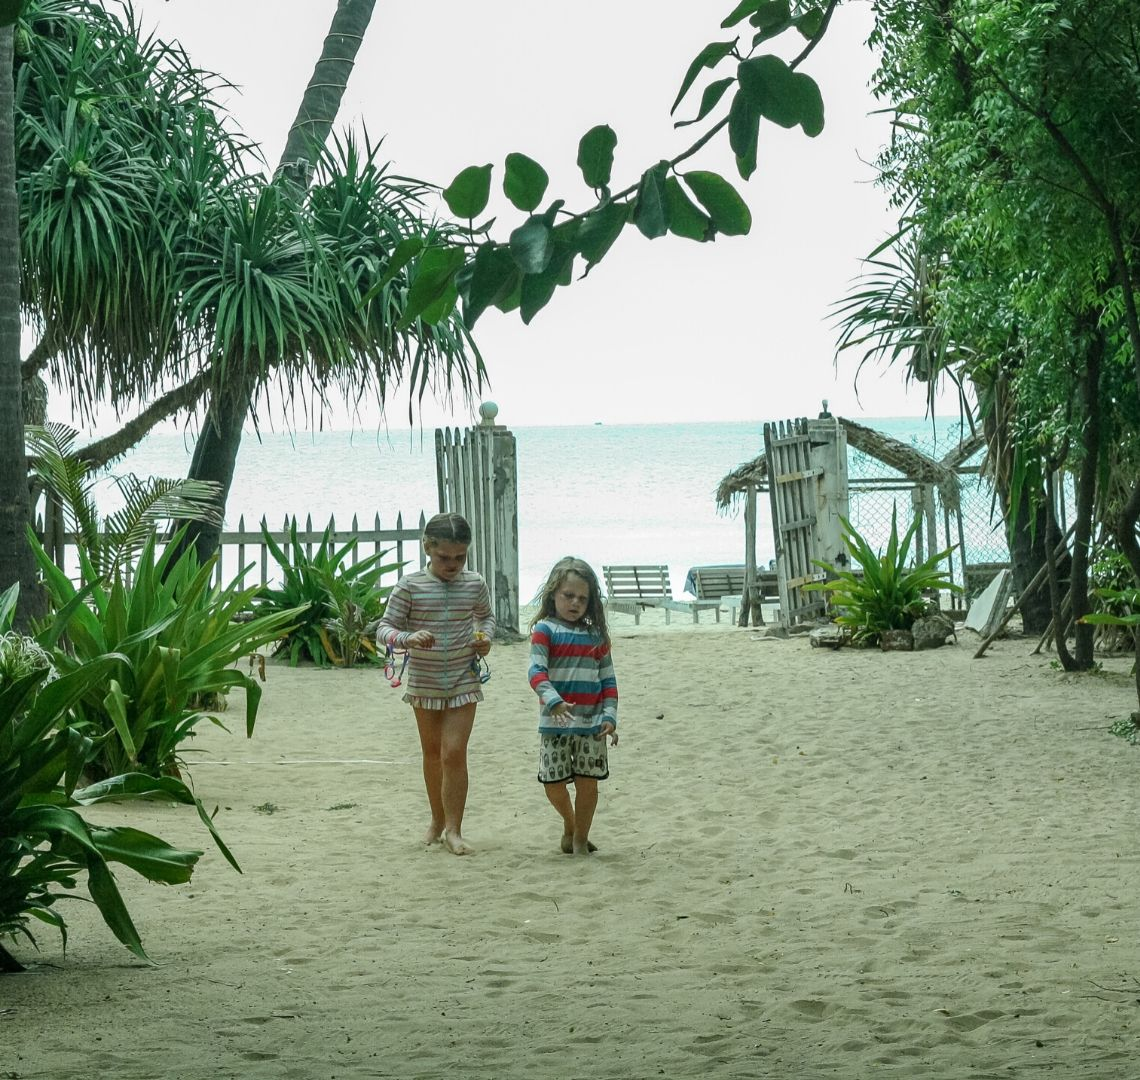 2 sisters walking up a sandy path among palm trees on Uppuveli Beach